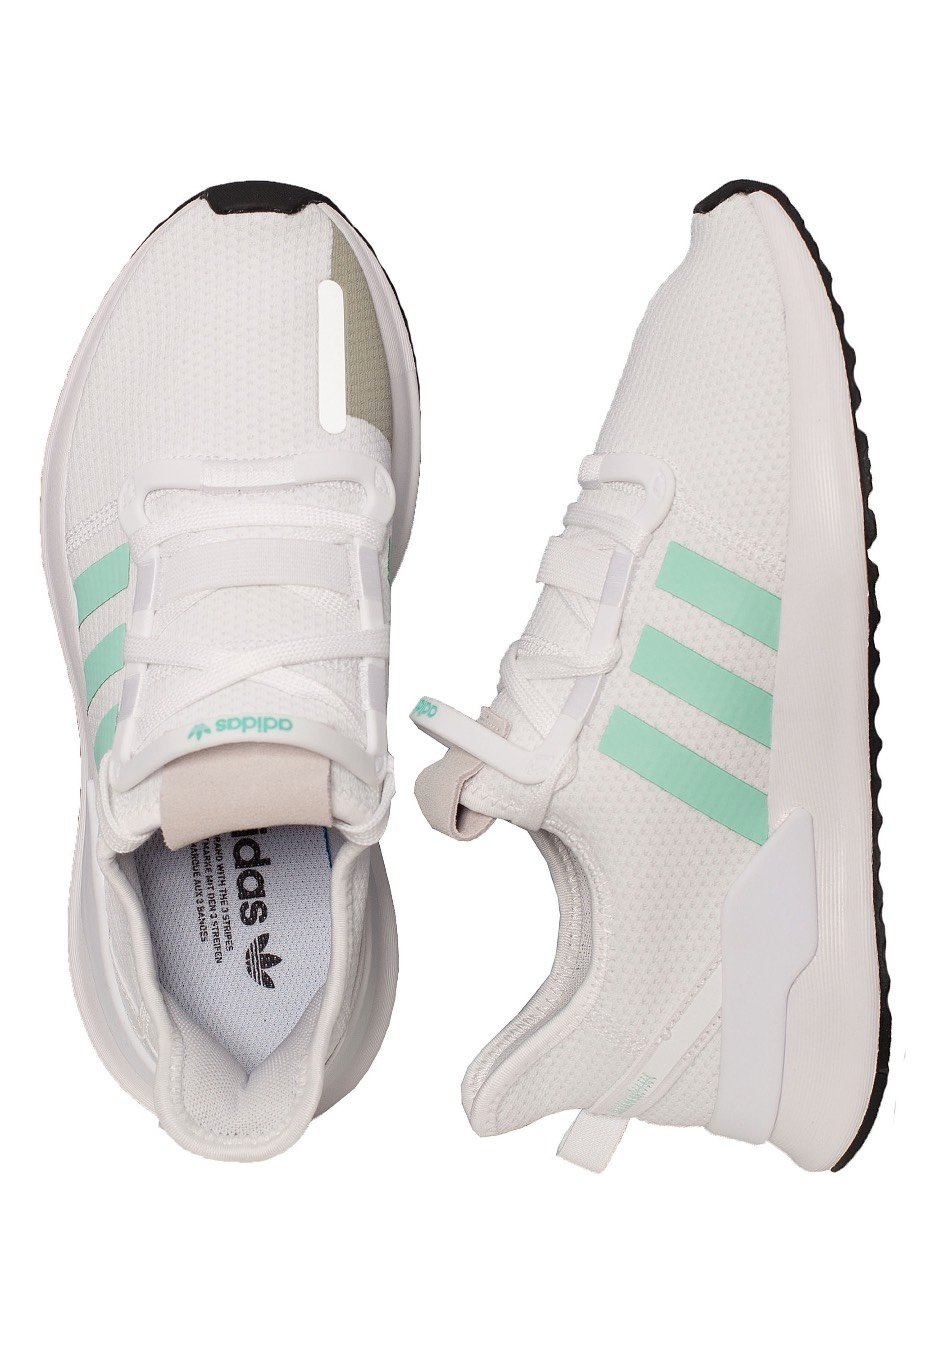 Schuhe Run Whiteclemincore Adidas Black Girl U W path Ftw PuTOkZXi